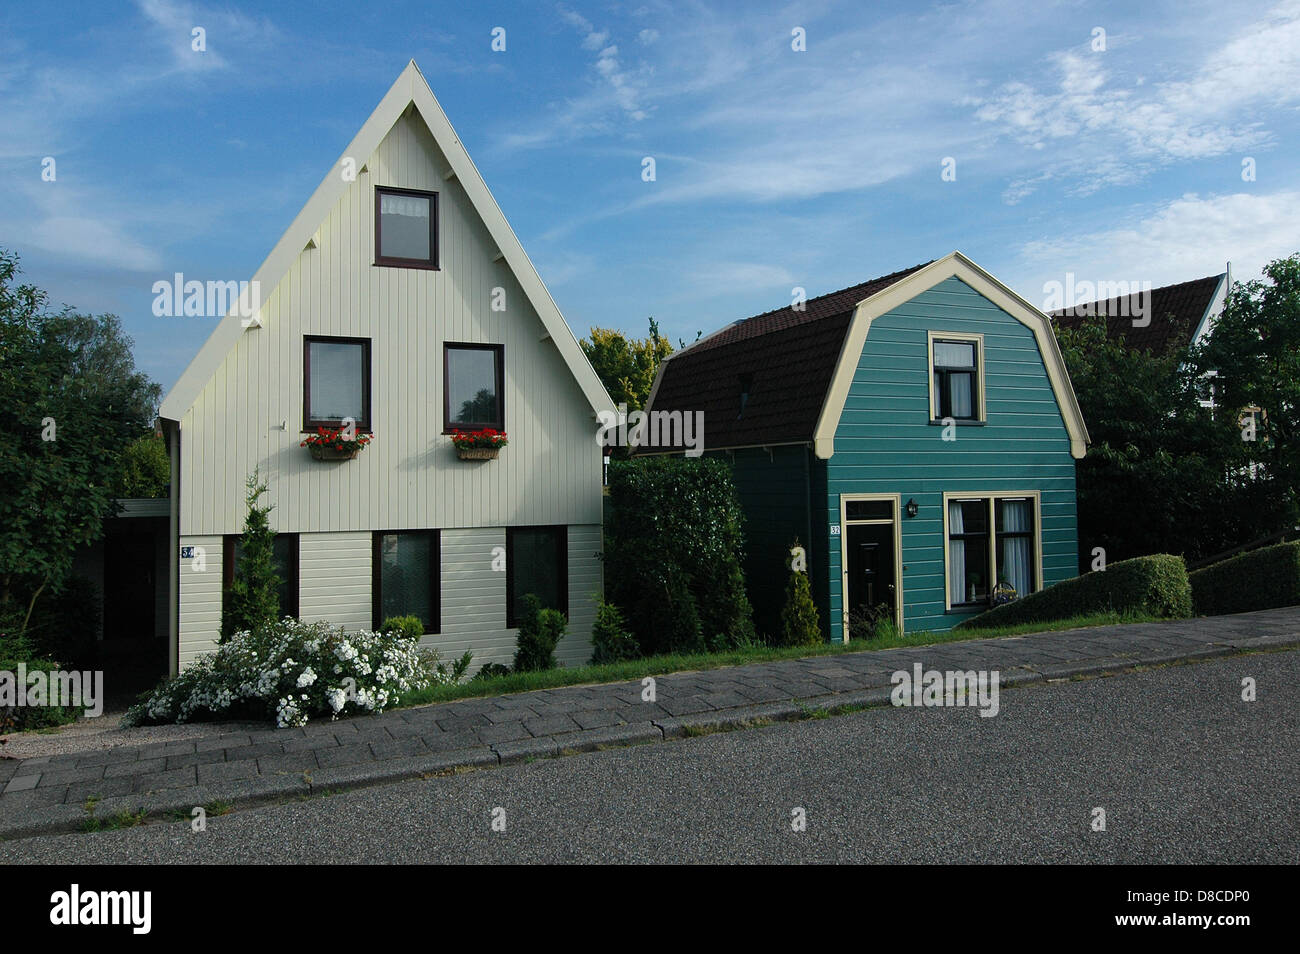 Houses in Weeps, The Netherlands - Stock Image